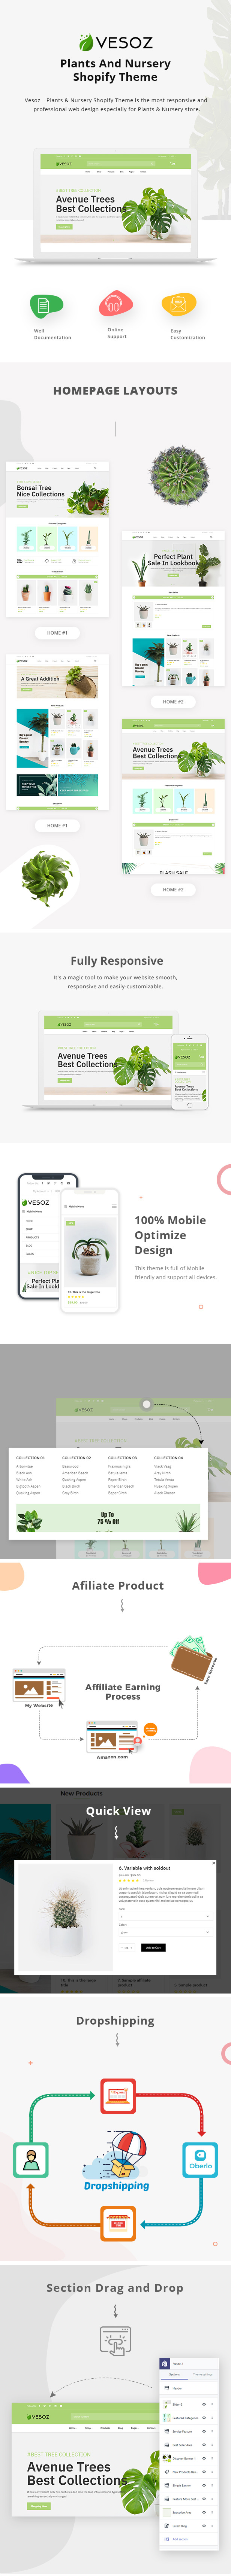 Vesoz - Plants And Nursery Shopify Theme - 1